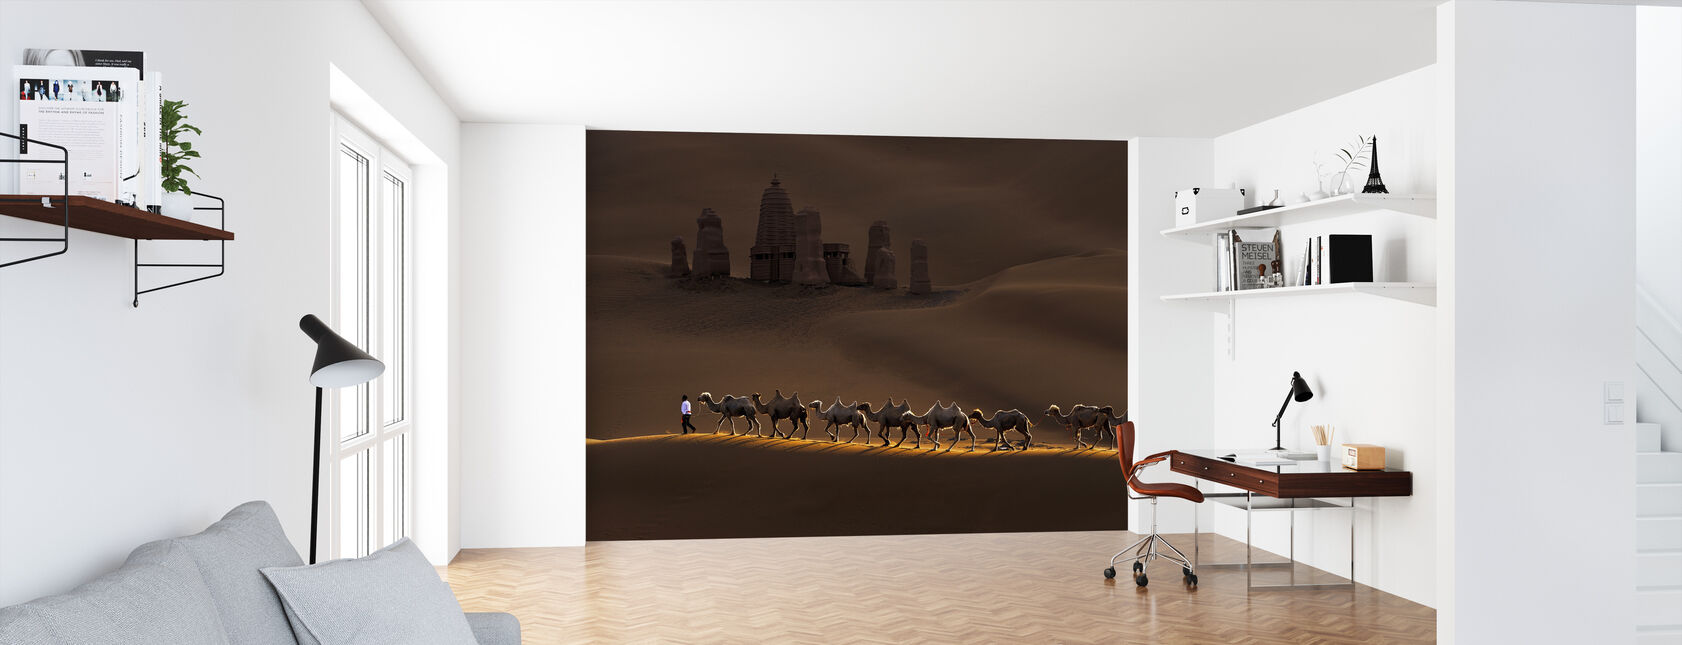 Castle and Camels - Wallpaper - Office